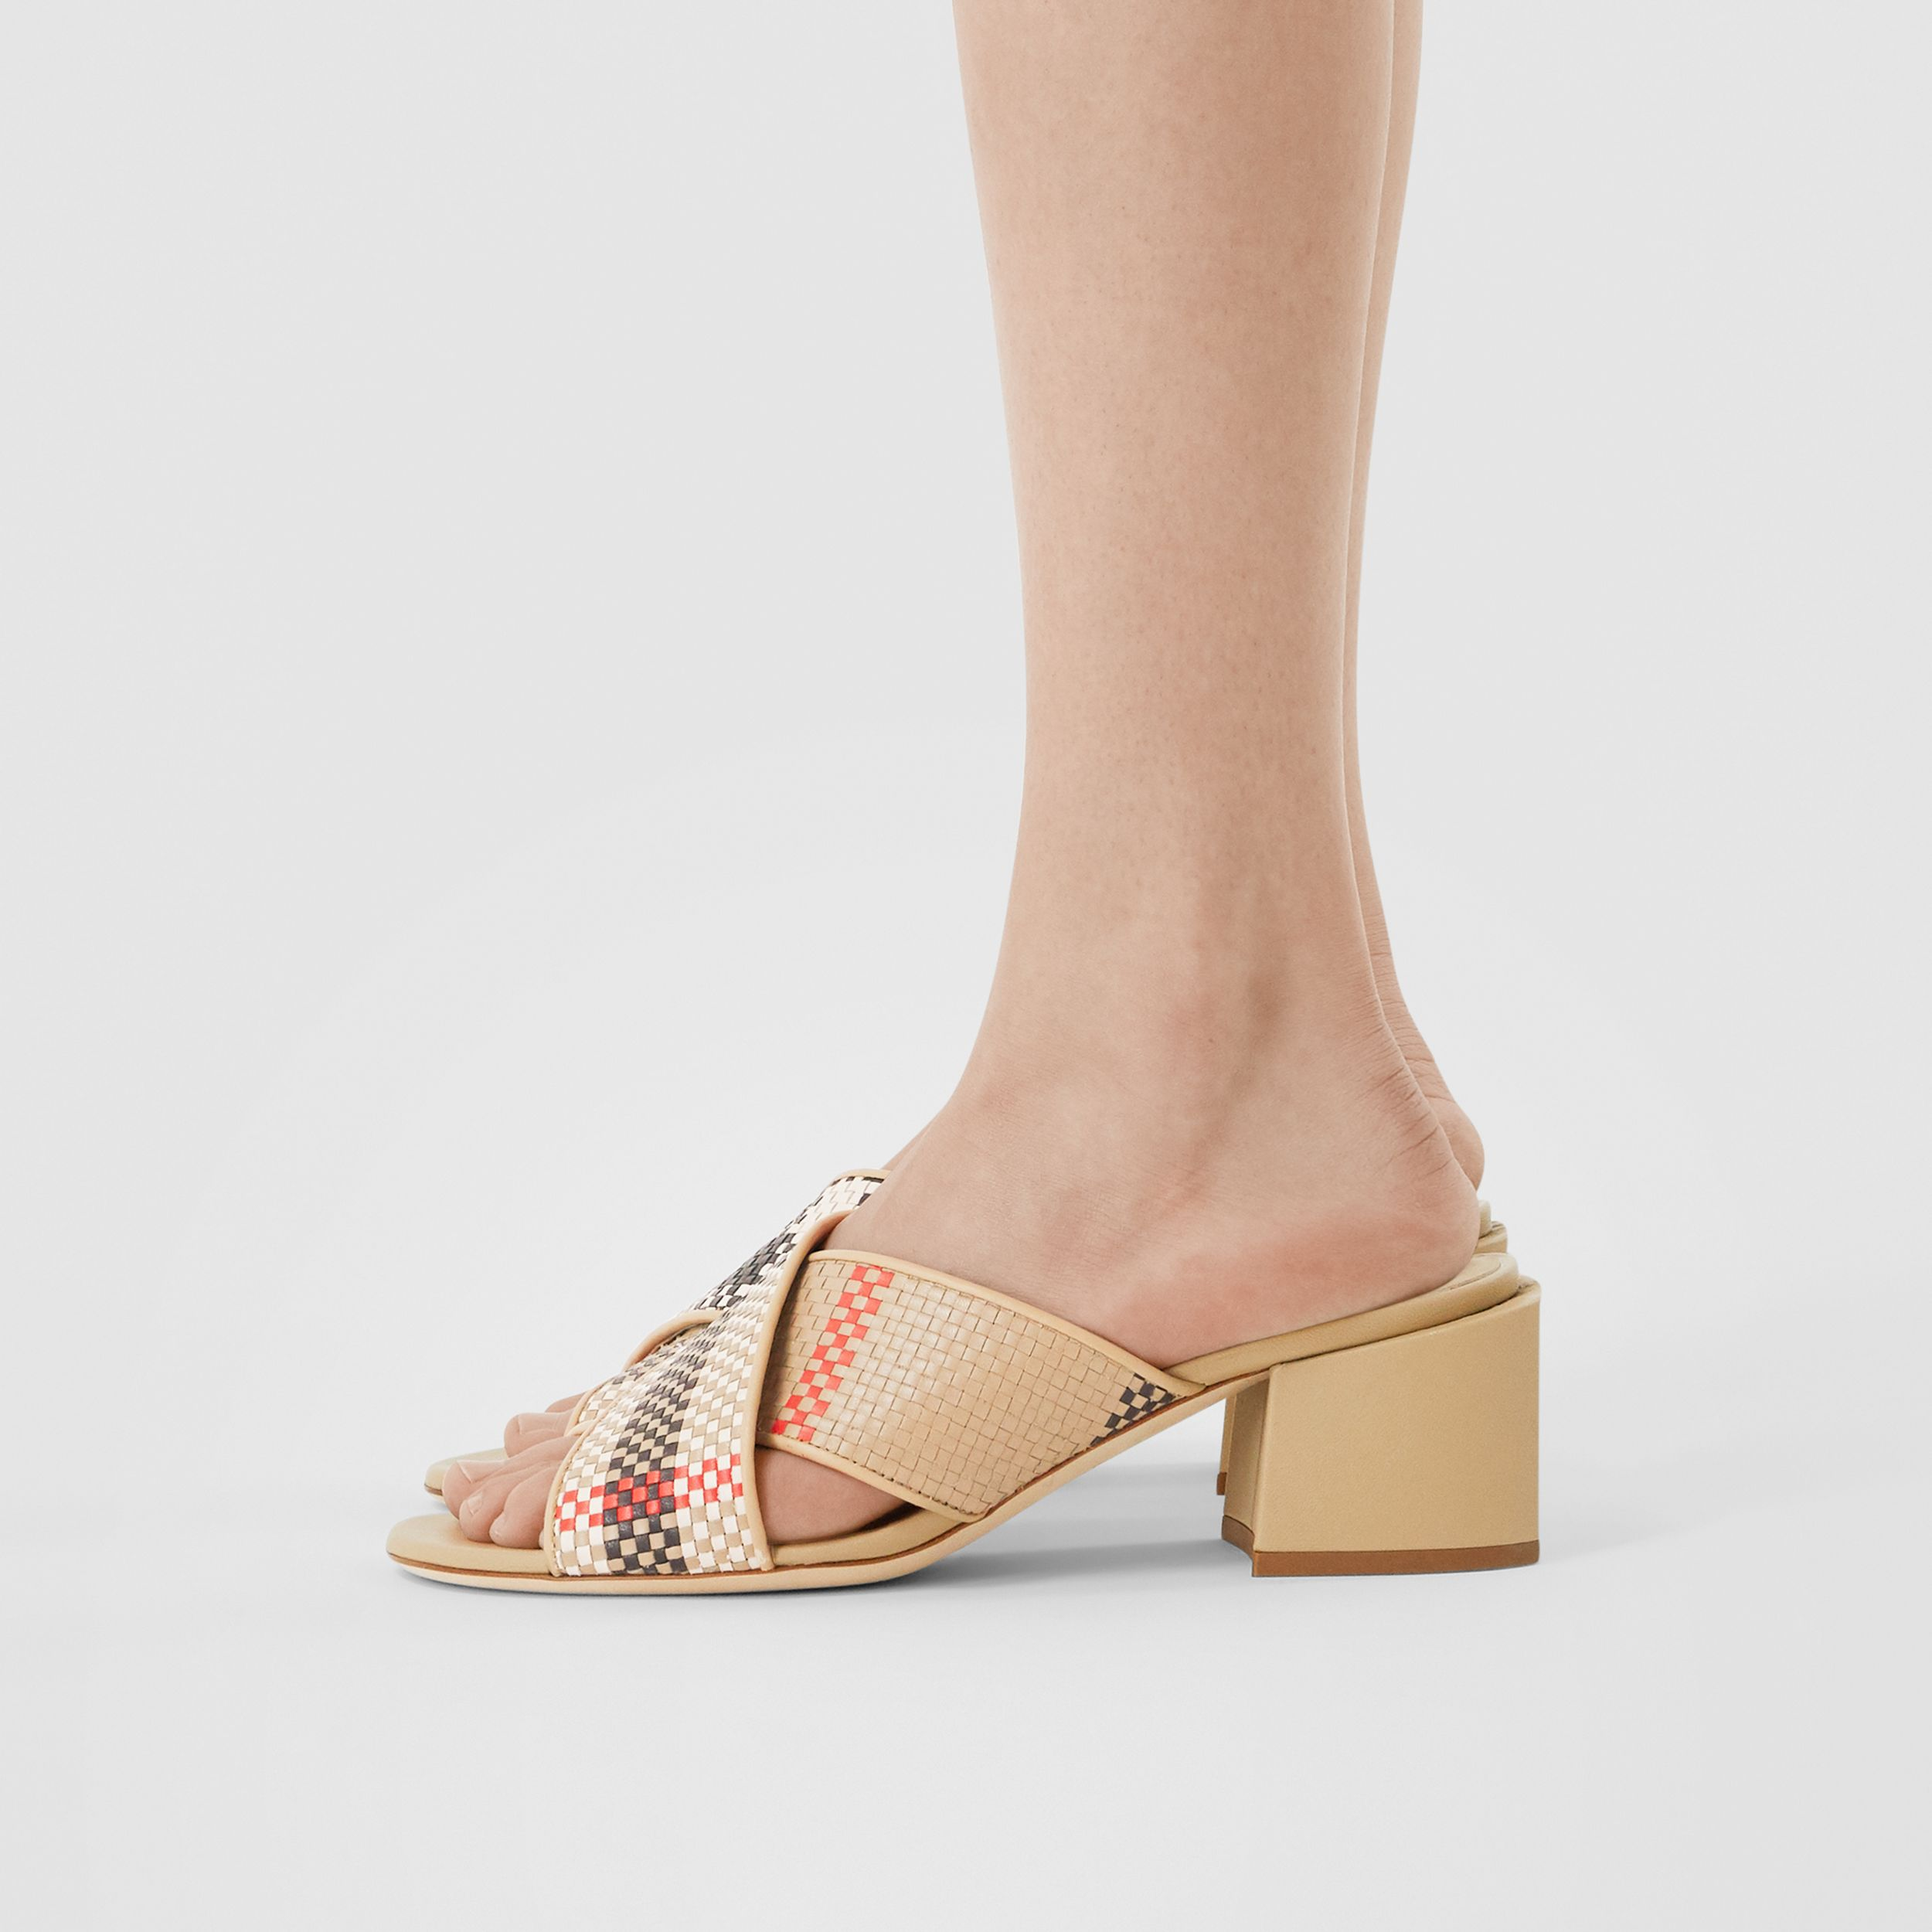 Latticed Leather Block-heel Sandals in Archive Beige - Women | Burberry - 3